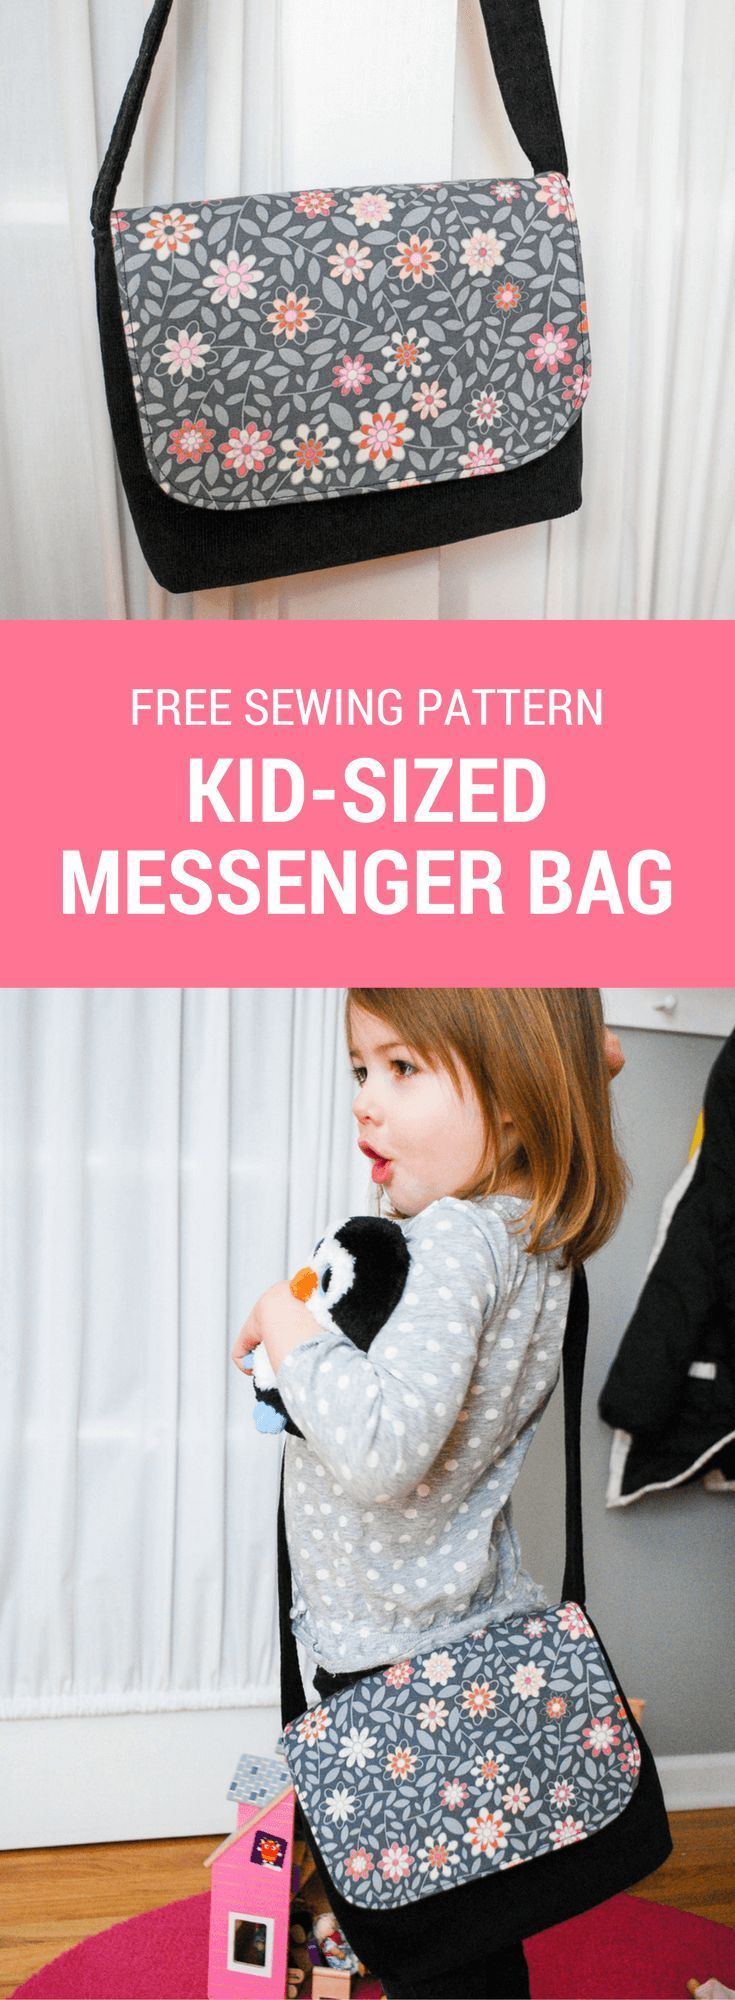 Free sewing pattern for a kid-sized messenger bag. It's an easy DIY sewing project for beginners and makes a great DIY gift for kids!